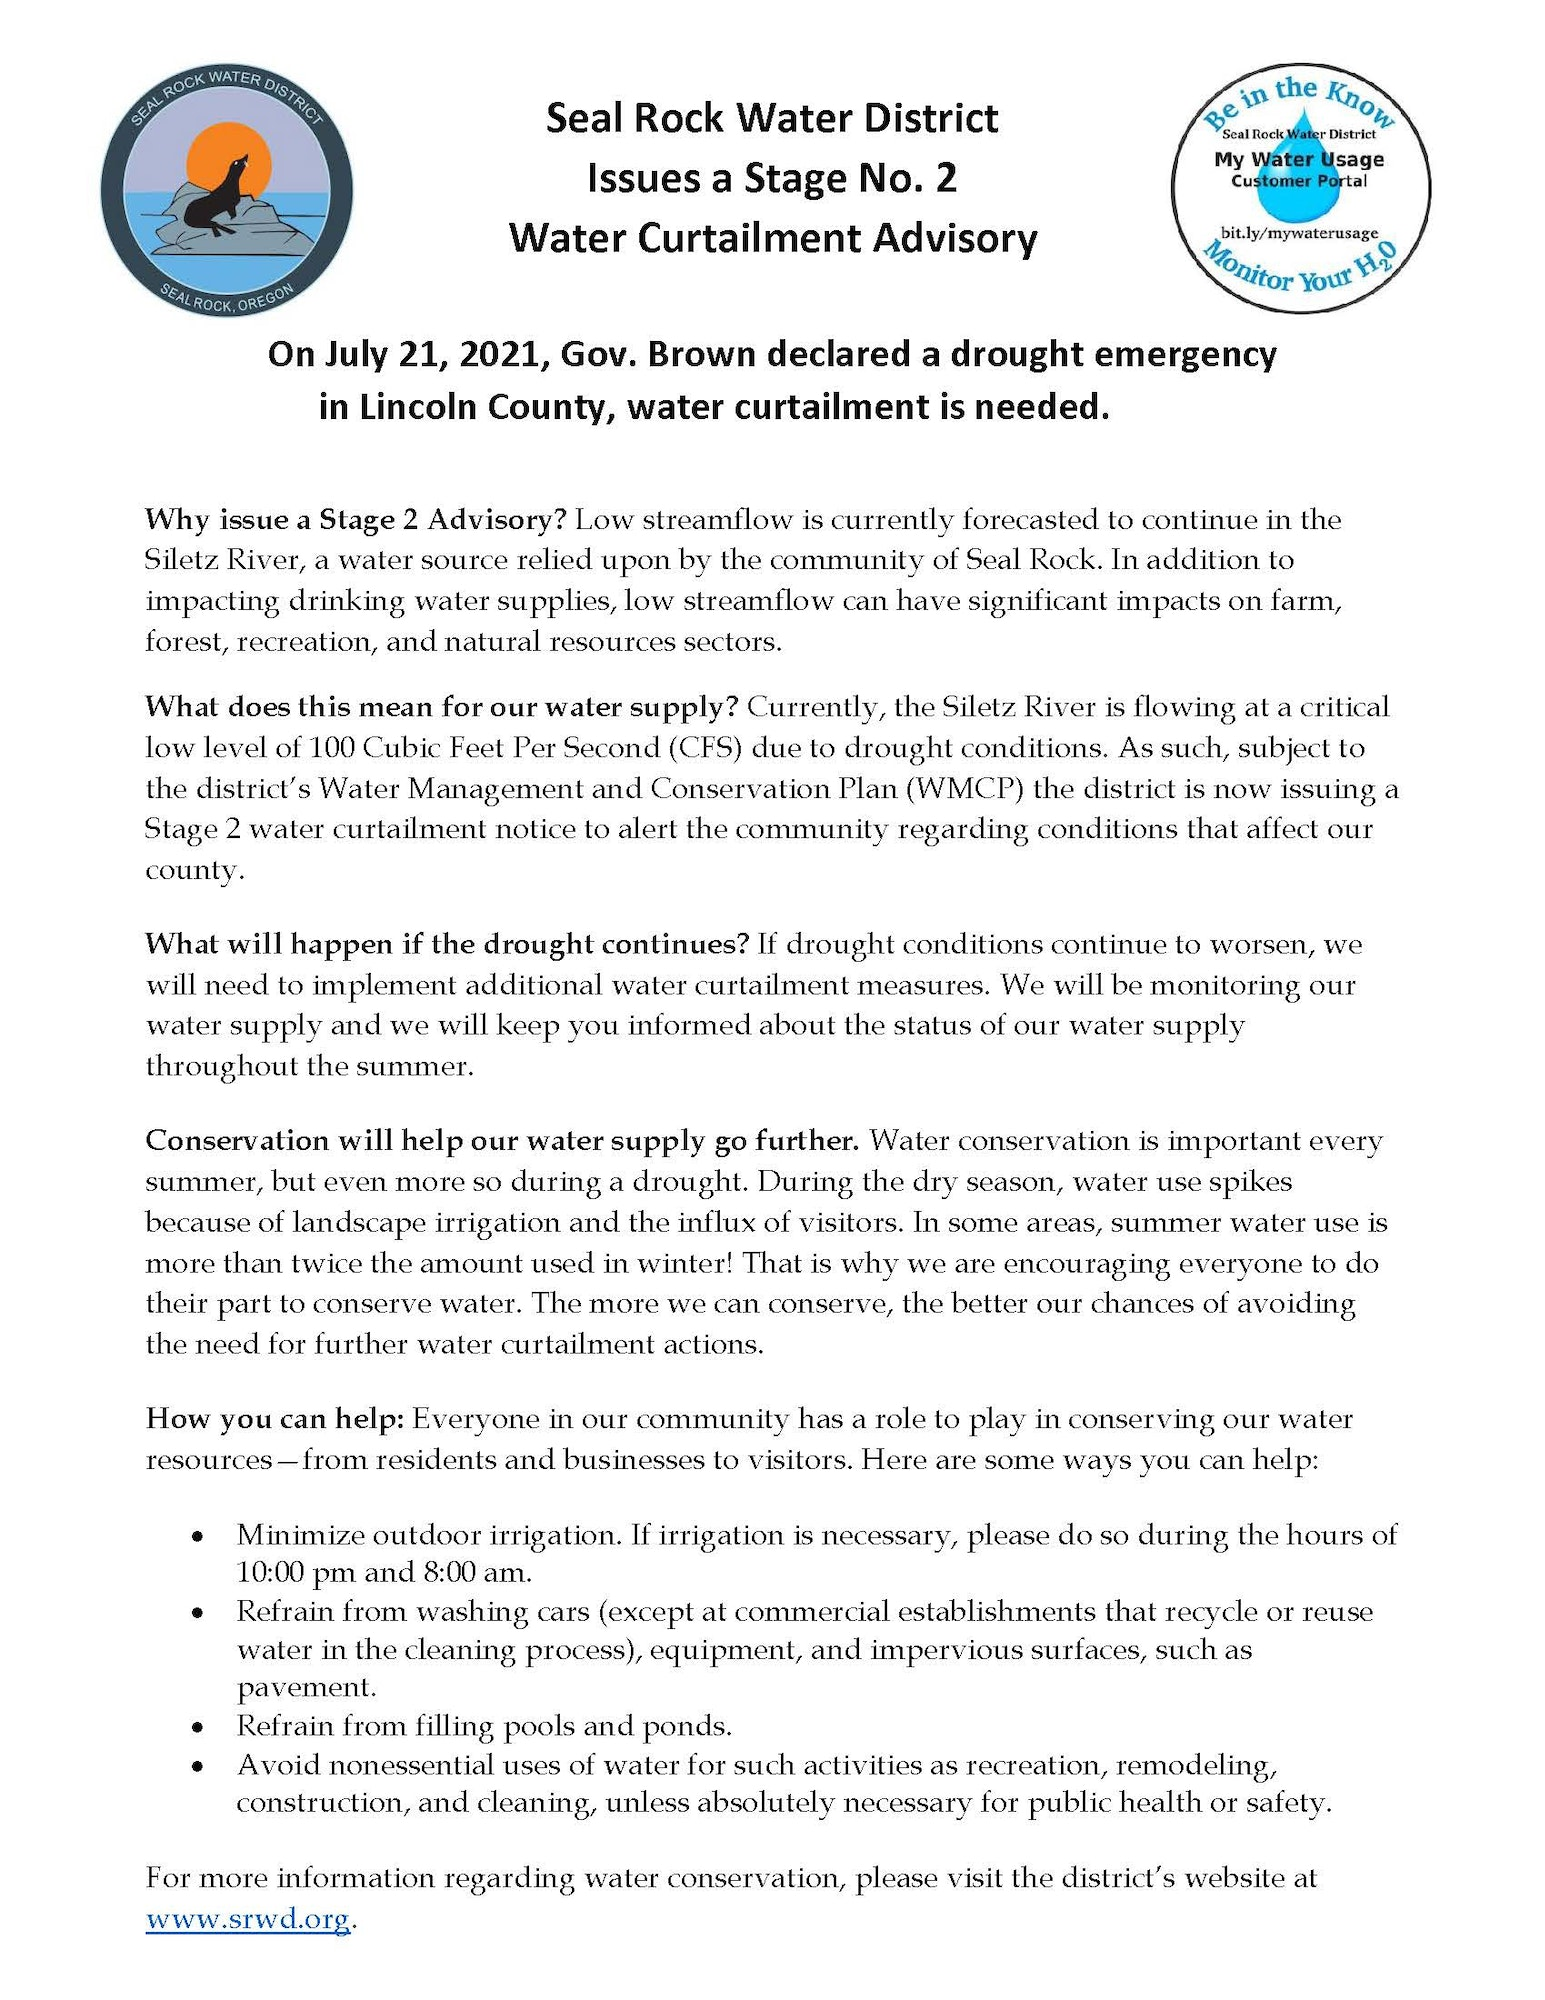 Image of Stage No. 2 Water Curtailment Advisory letter page one